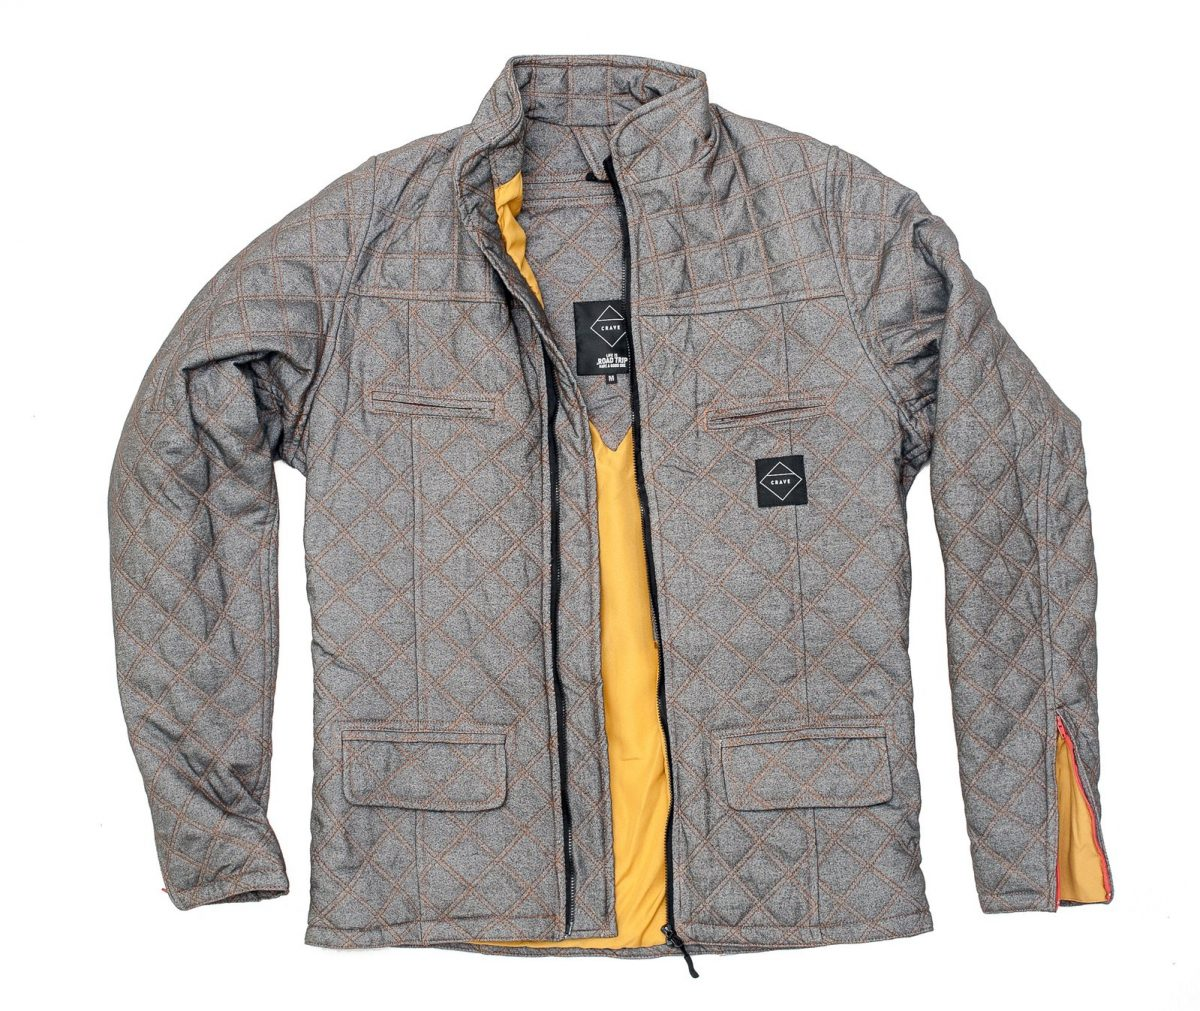 Crave Duke Quilted Kevlar Riding Jacket